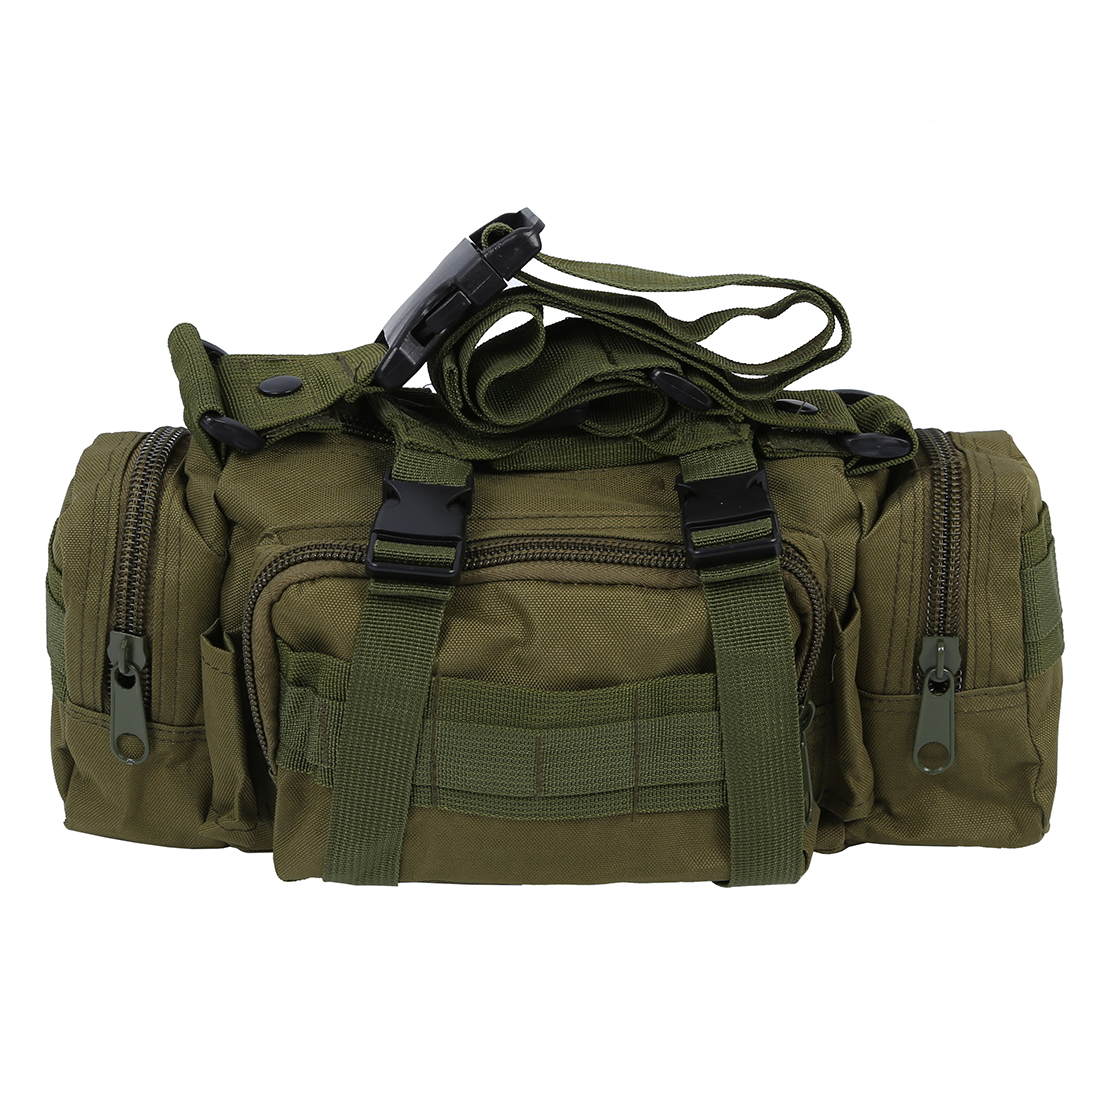 BikeTrekking  Military Army Bum Travel Waist Bag